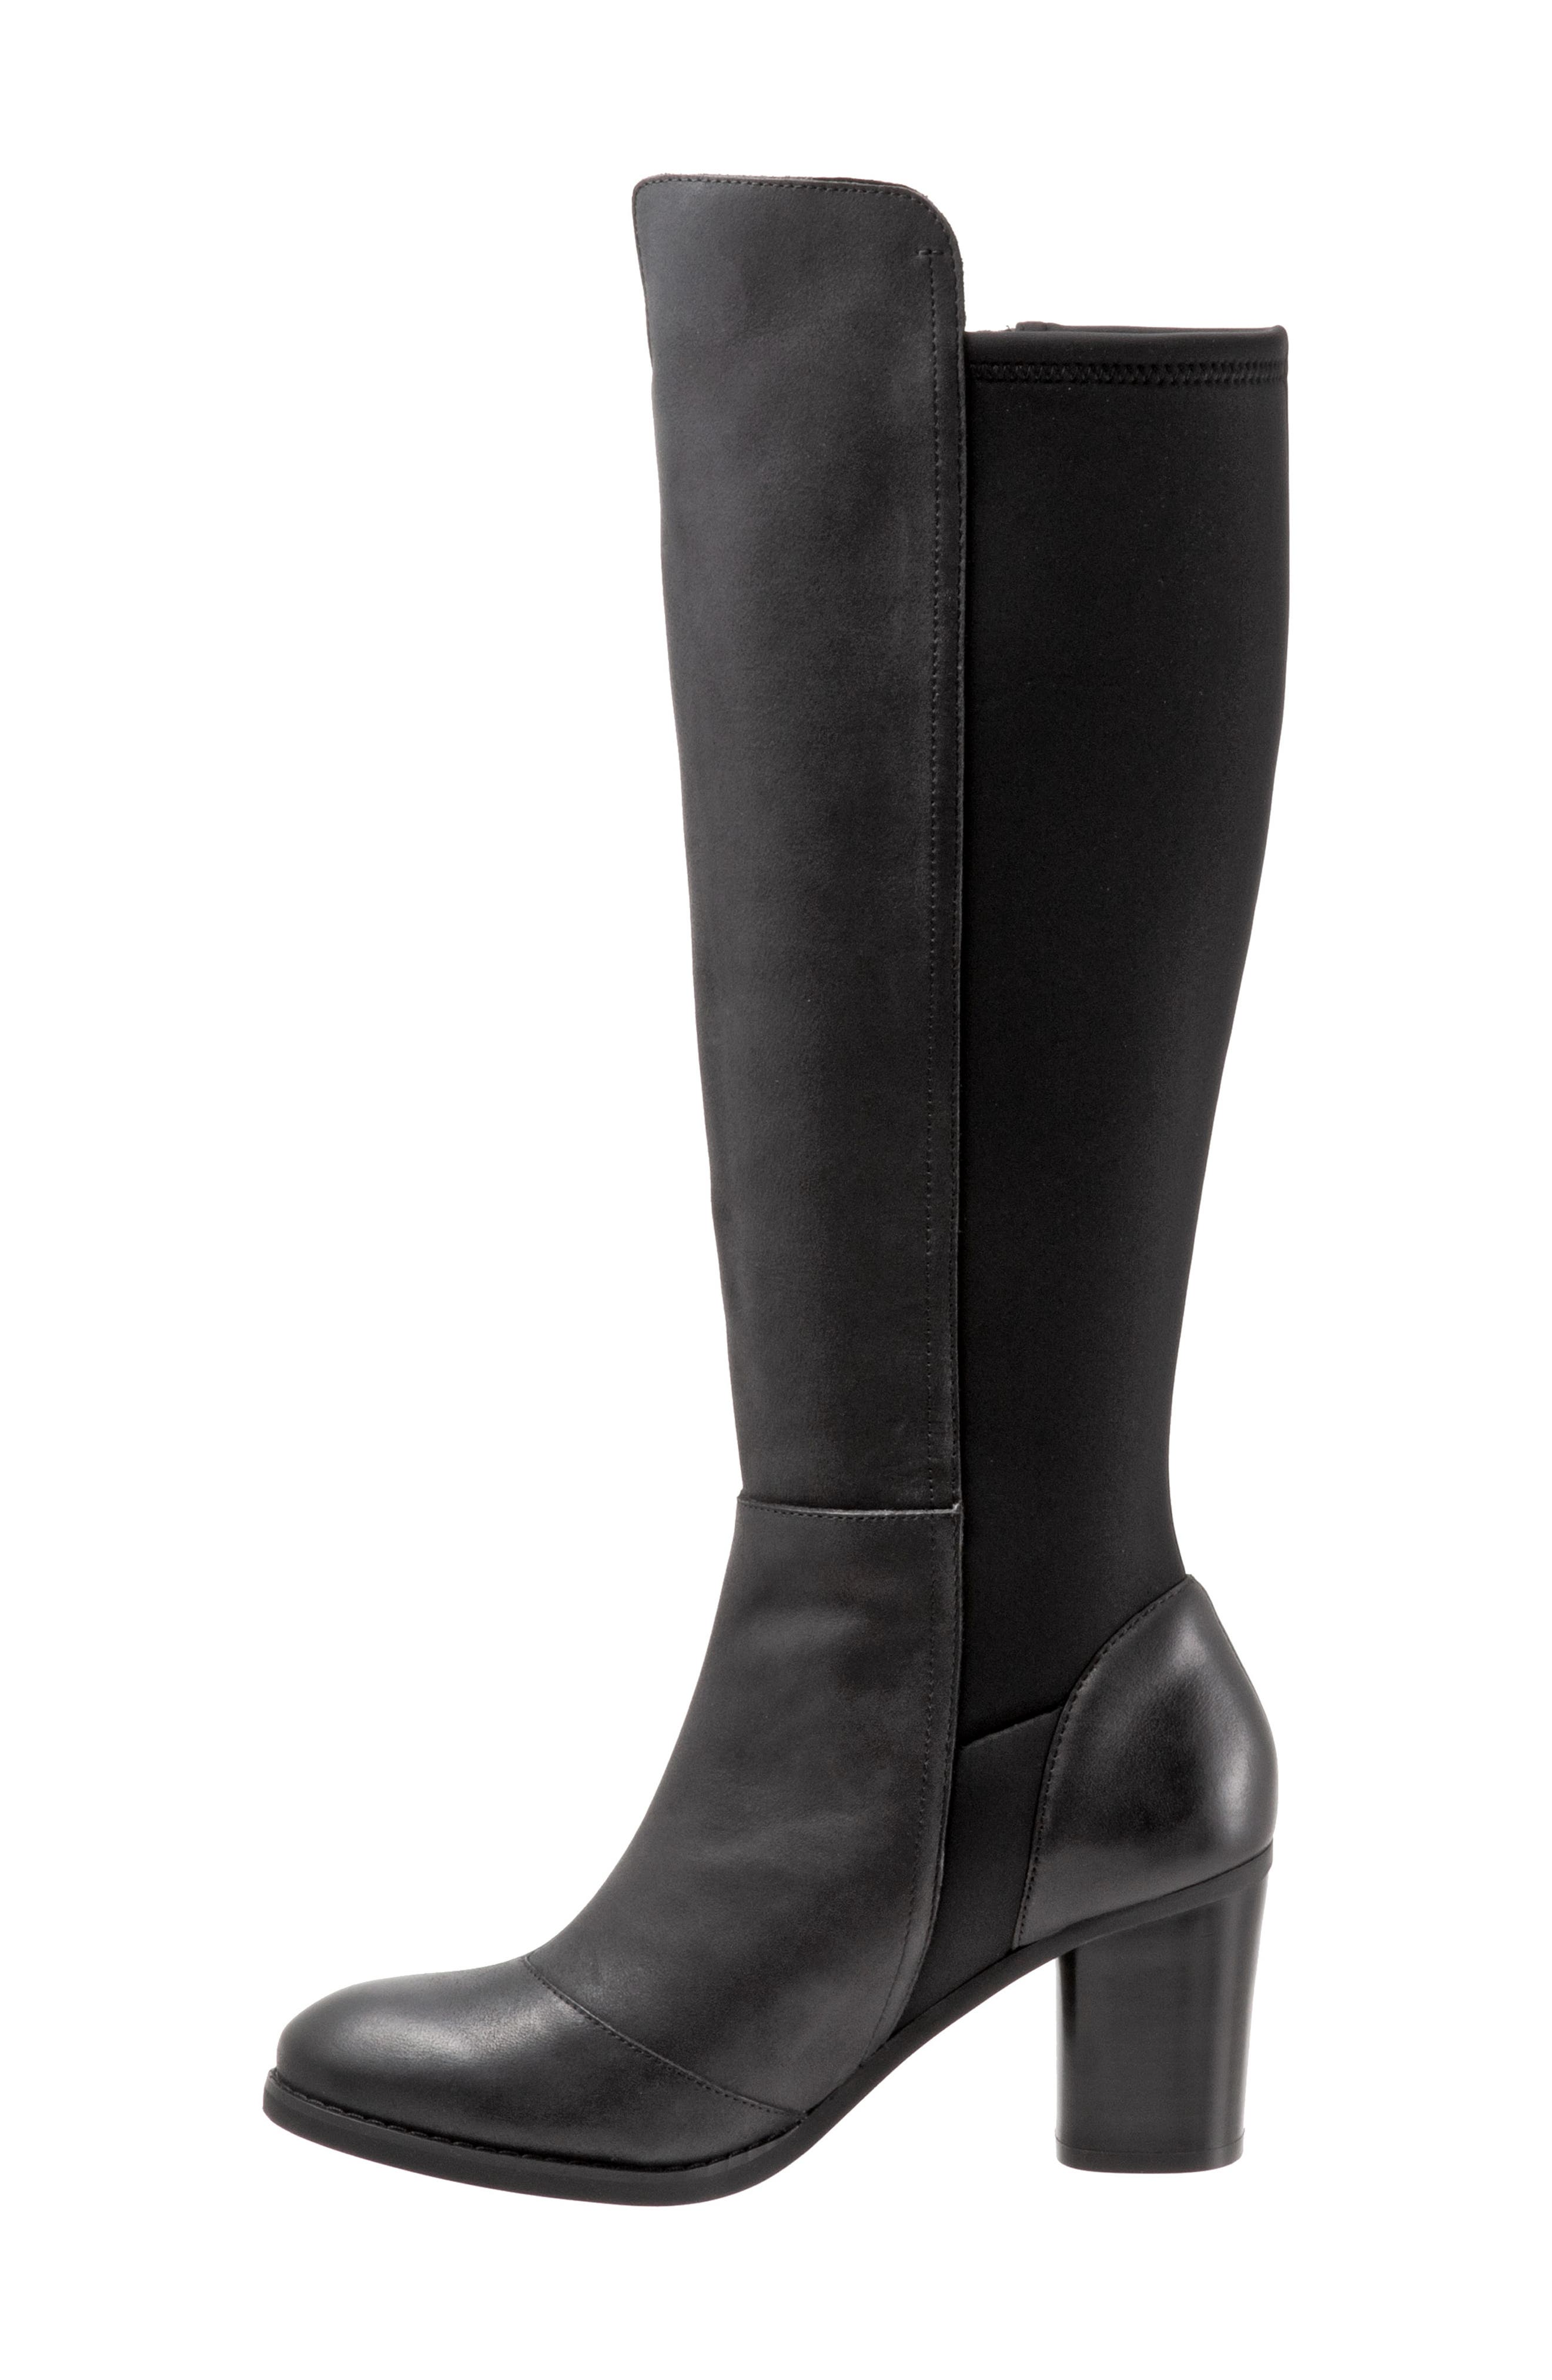 SOFTWALK<SUP>®</SUP>, Katia Knee High Boot, Alternate thumbnail 8, color, BLACK LEATHER